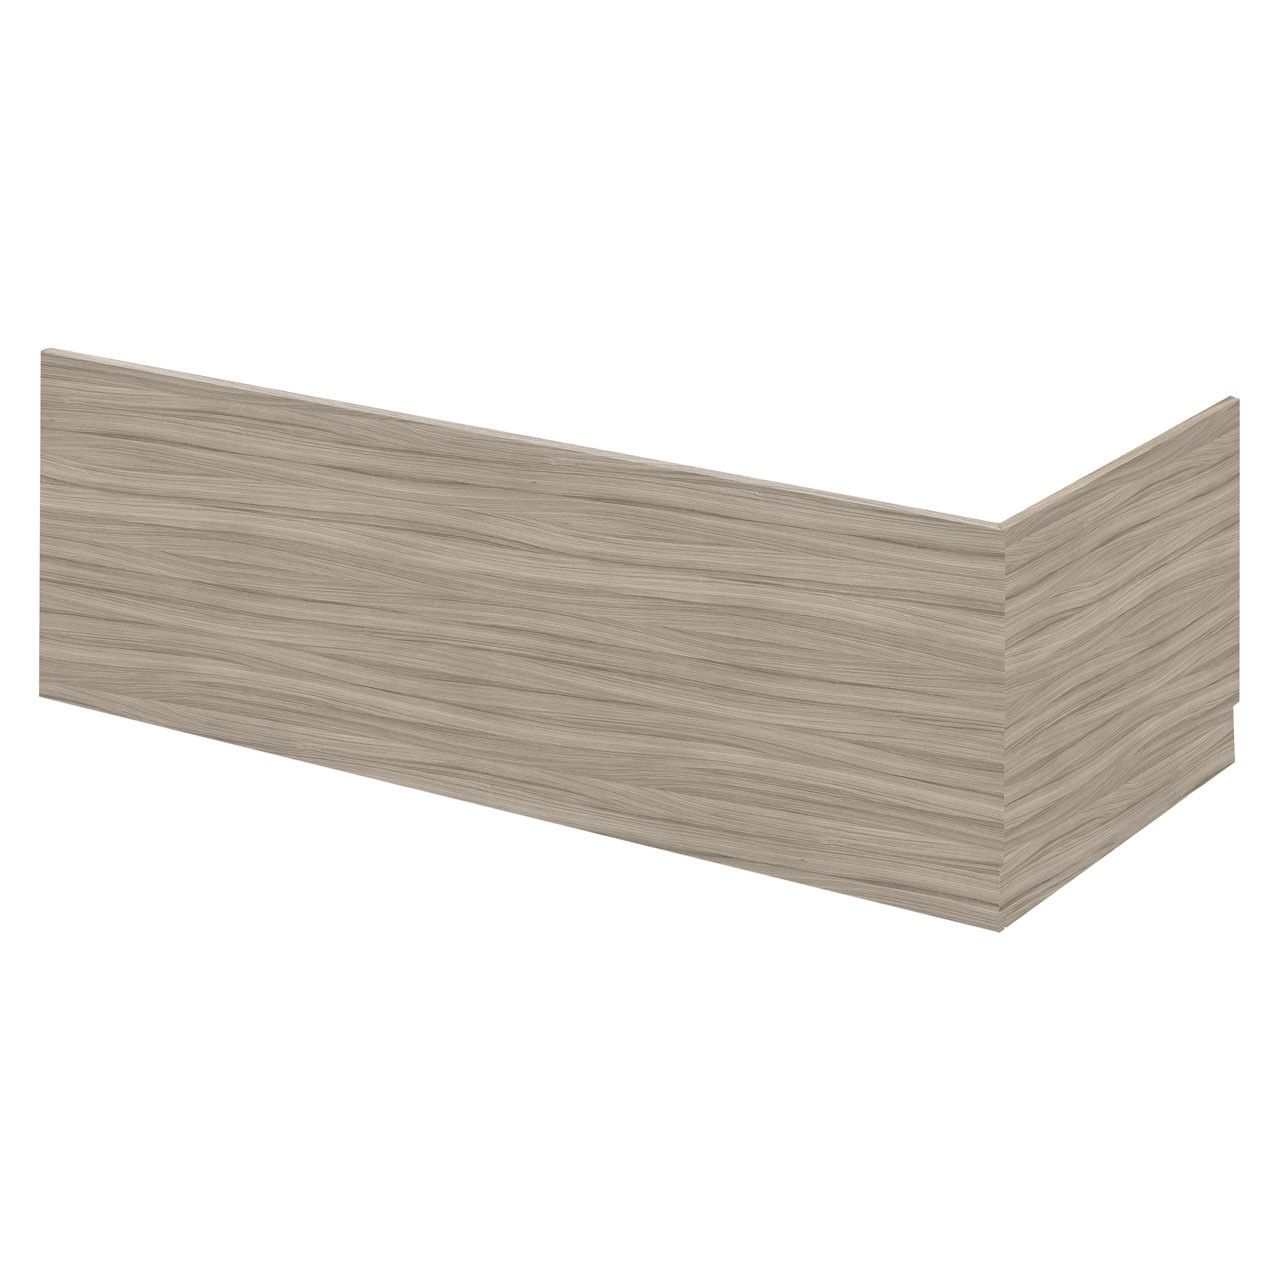 Nuie Athena Driftwood 1800mm Front Bath Panel - MPC107